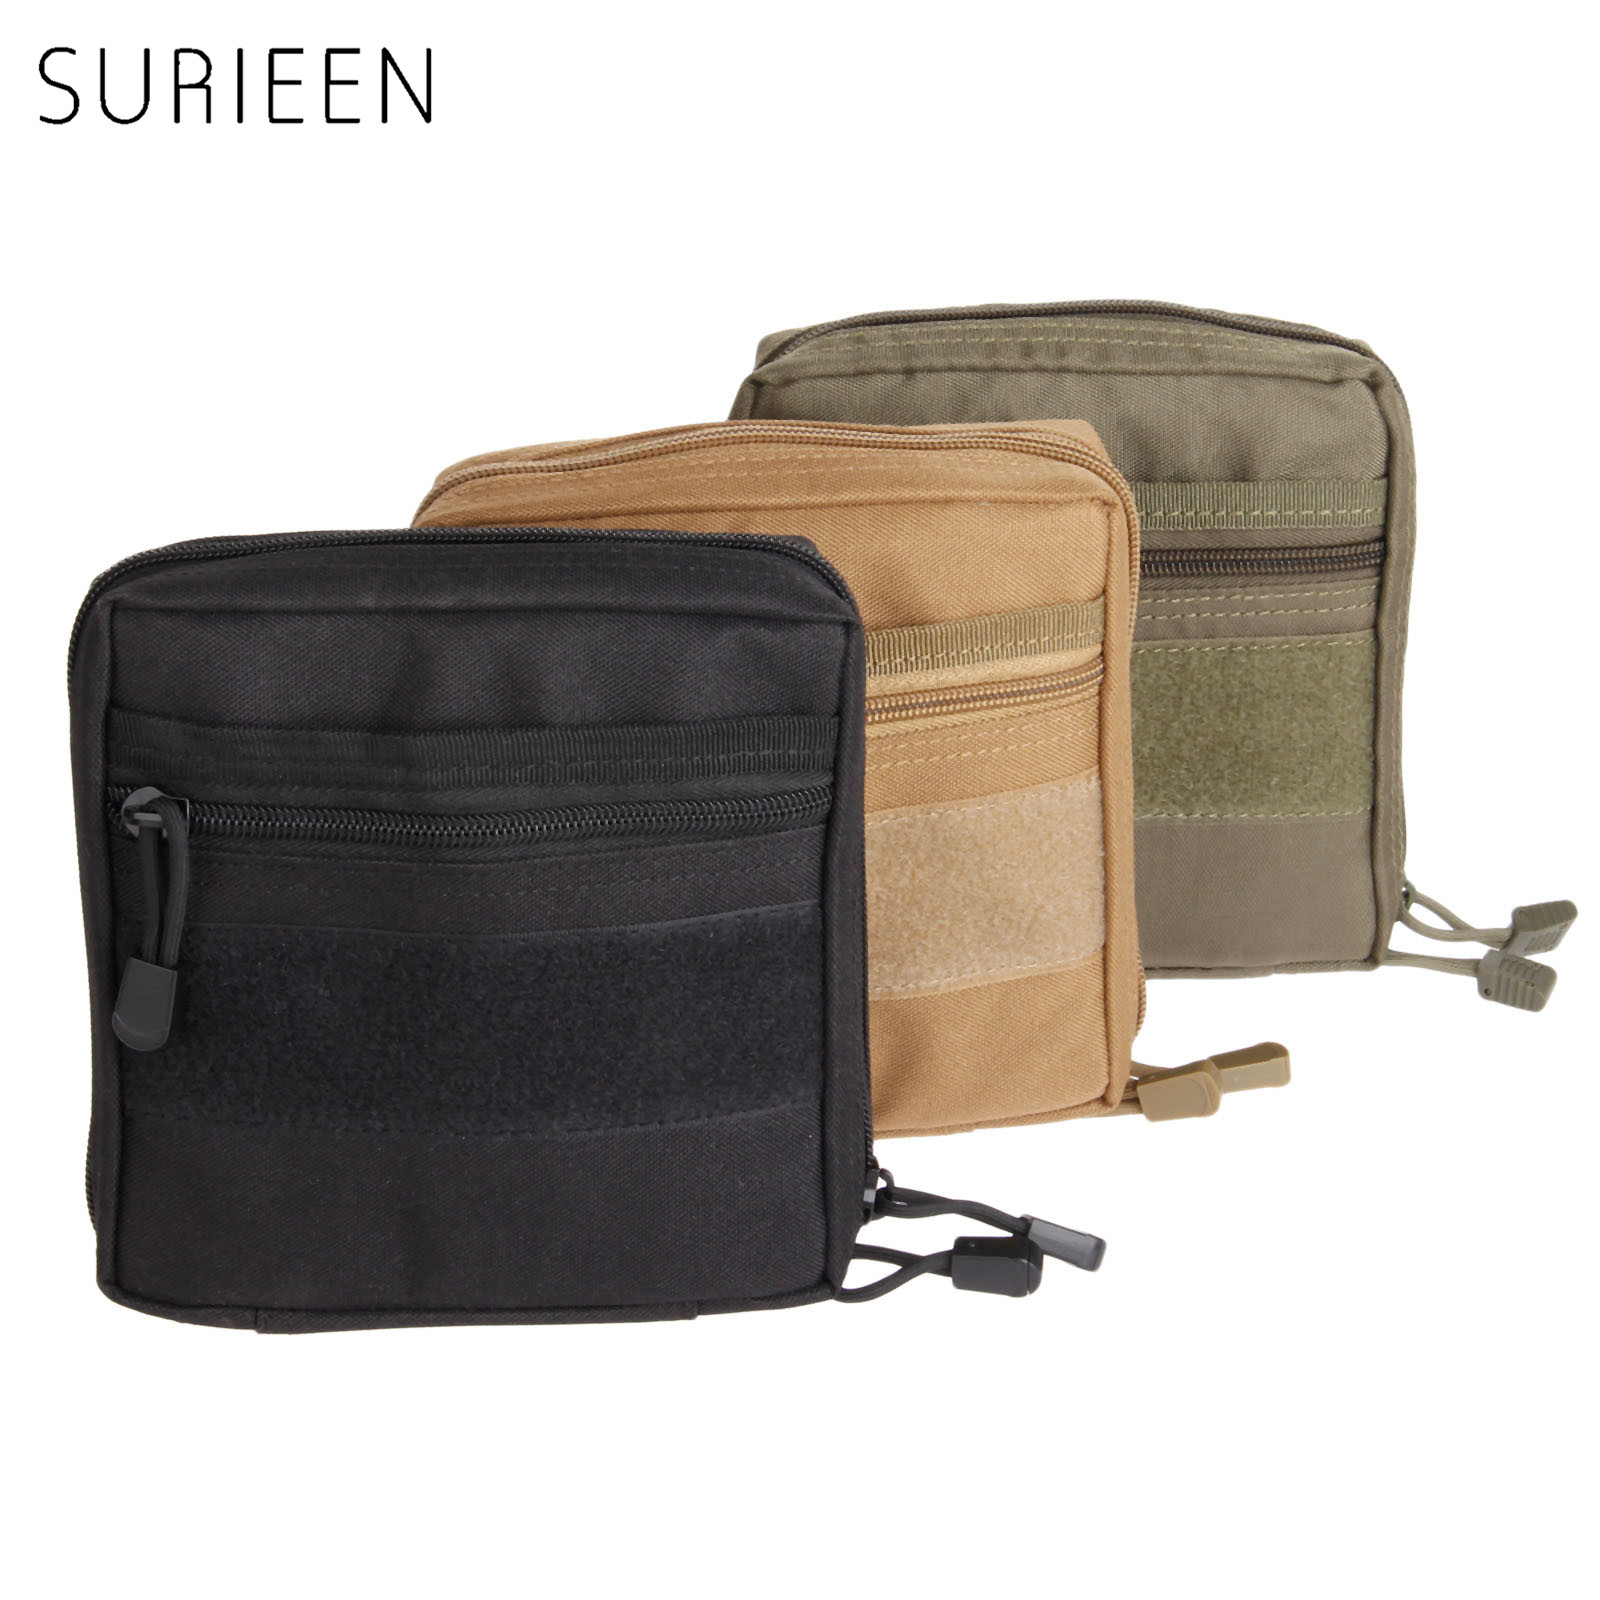 SURIEEN MOLLE Military Pouch Tactical 1000D Emergency Medical Kits Outdoor First Aid Survival Bag Multi EDC Gadget Pouch Pocket